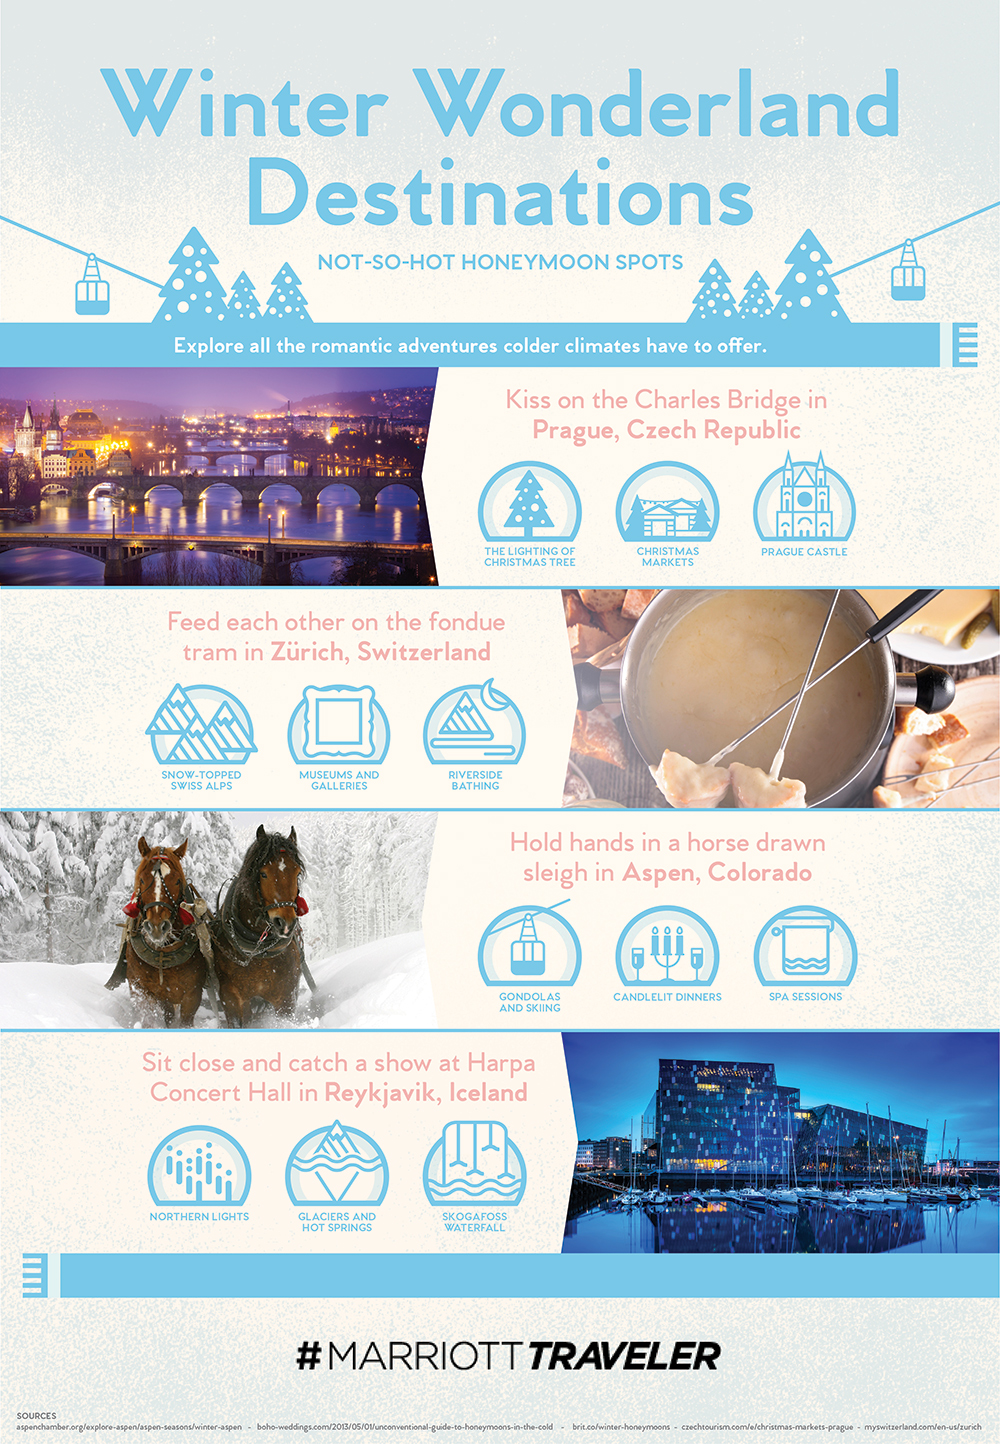 cold-weather-honeymoon-ideas-graphic.jpg